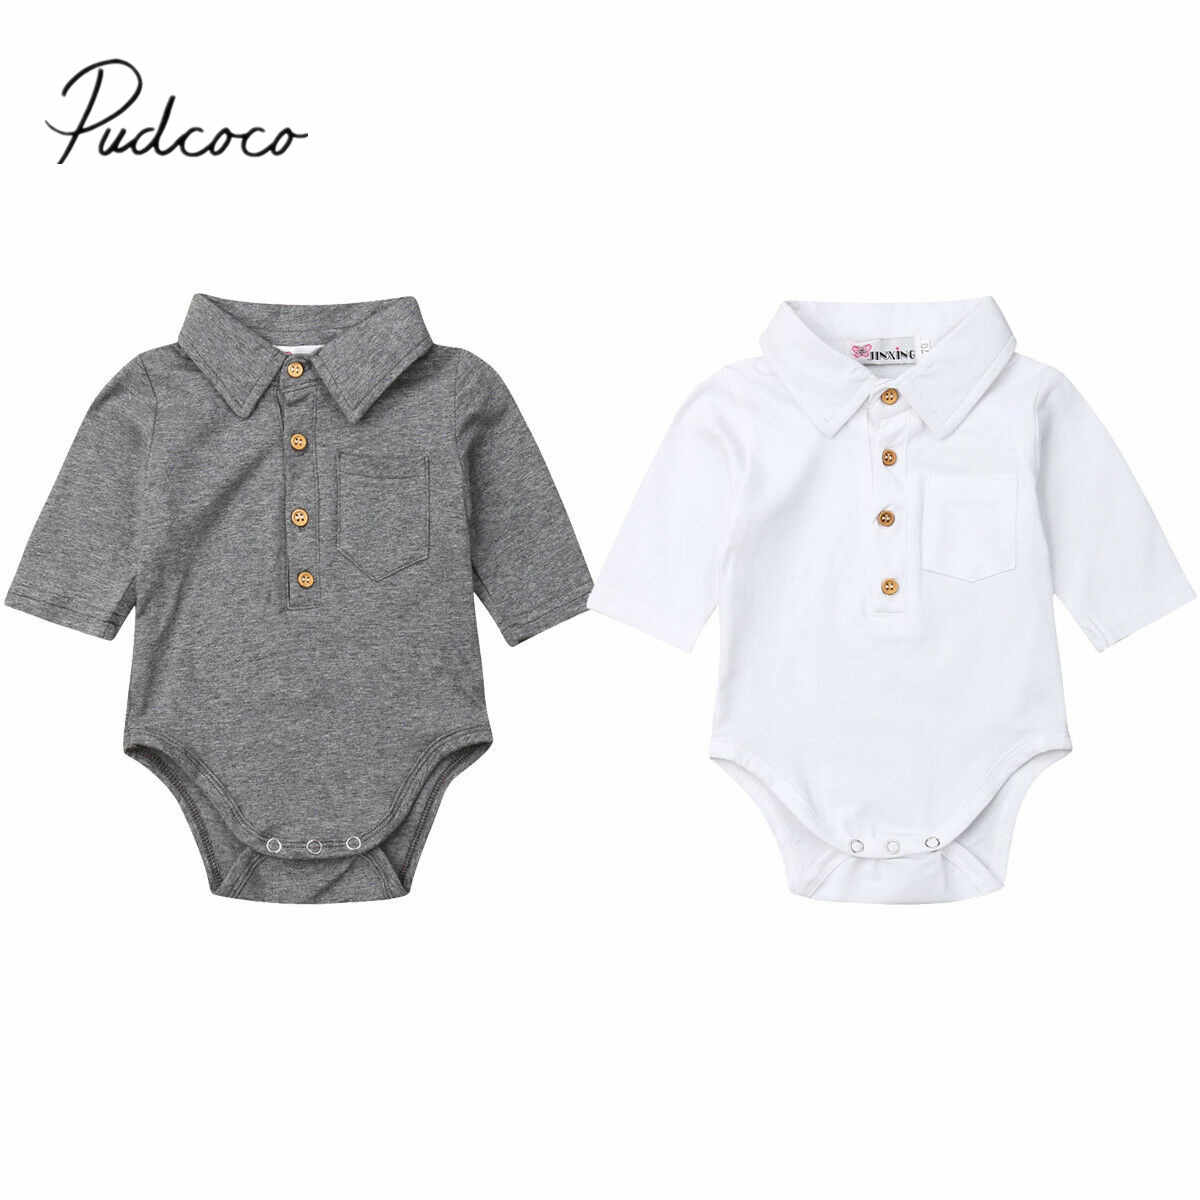 2019 Baby Summer Clothing Infant Baby Boy Gentleman Solid Formal Bodysuit Short Sleeve Turn Down Collar Shirts Jumpsuit Set